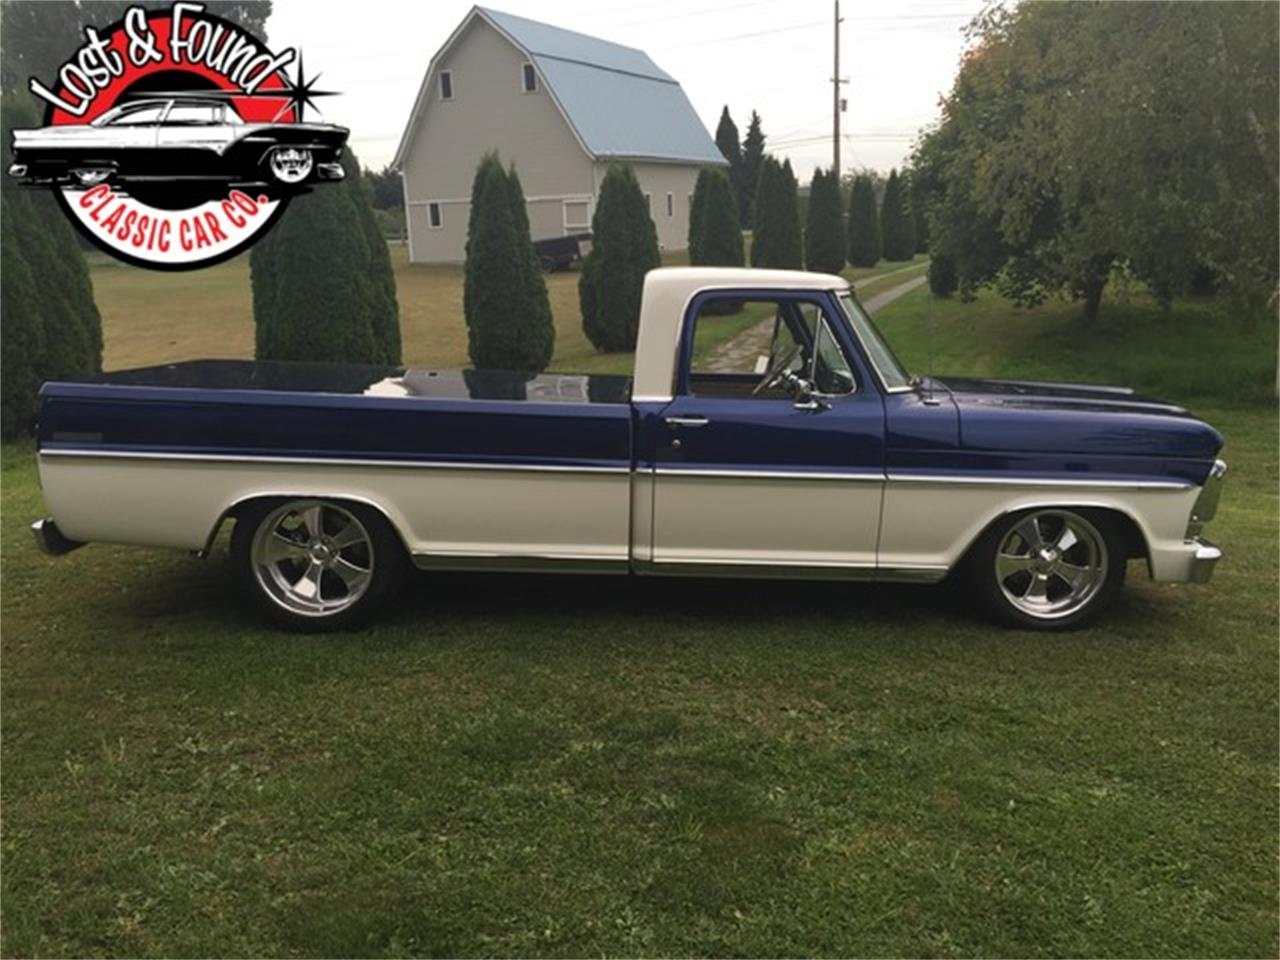 Large Picture of Classic 1967 Pickup - $69,500.00 - JGVP